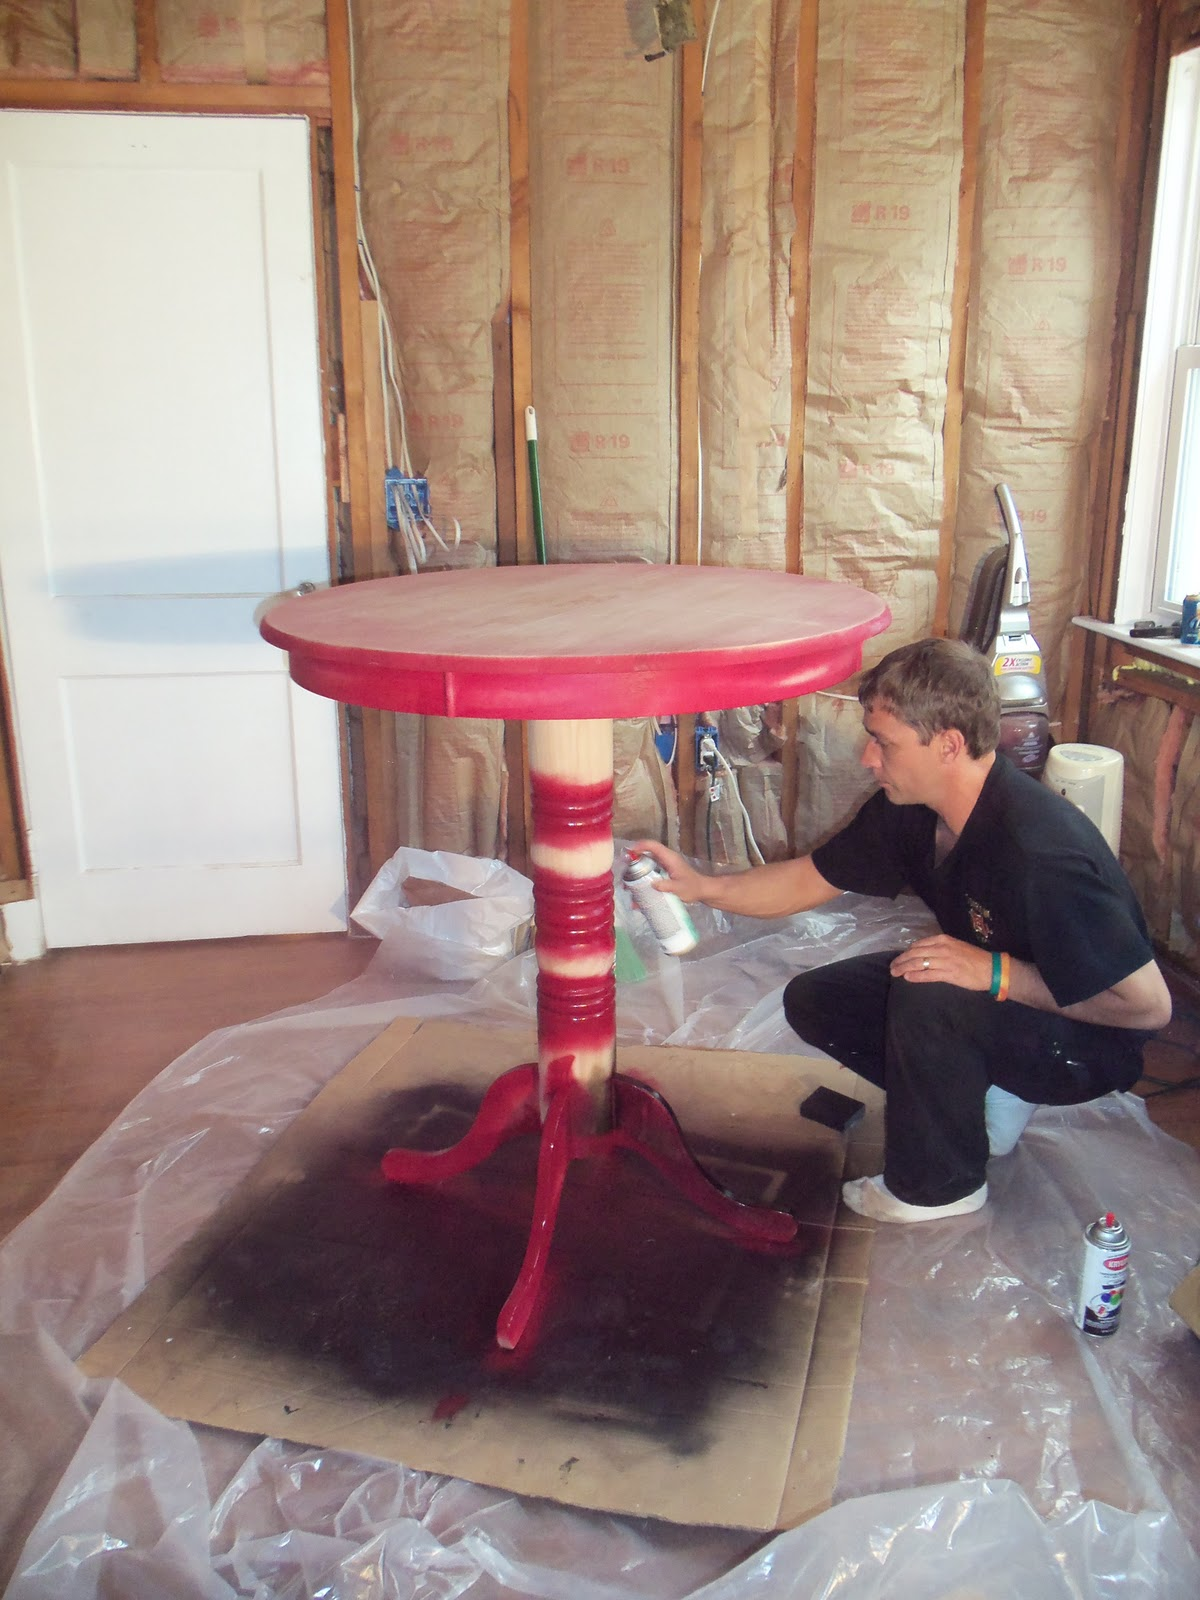 Distressed shabby chic black red pub table first my husband gordon and i painted the areas around the table that i wanted the burgundy color to show through watchthetrailerfo